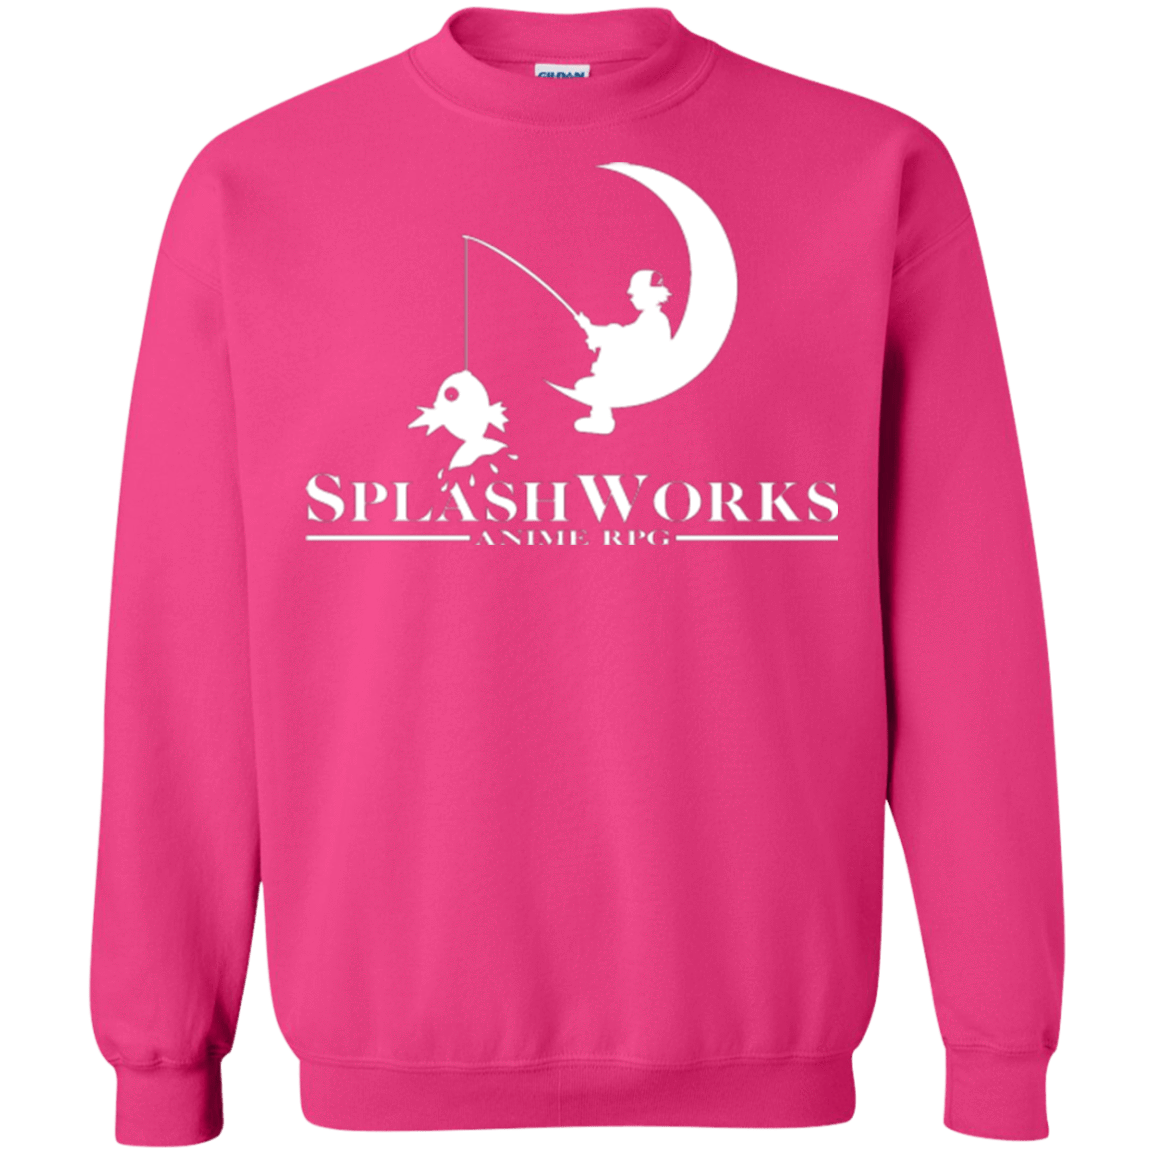 Sweatshirts Heliconia / Small Splash Works Crewneck Sweatshirt